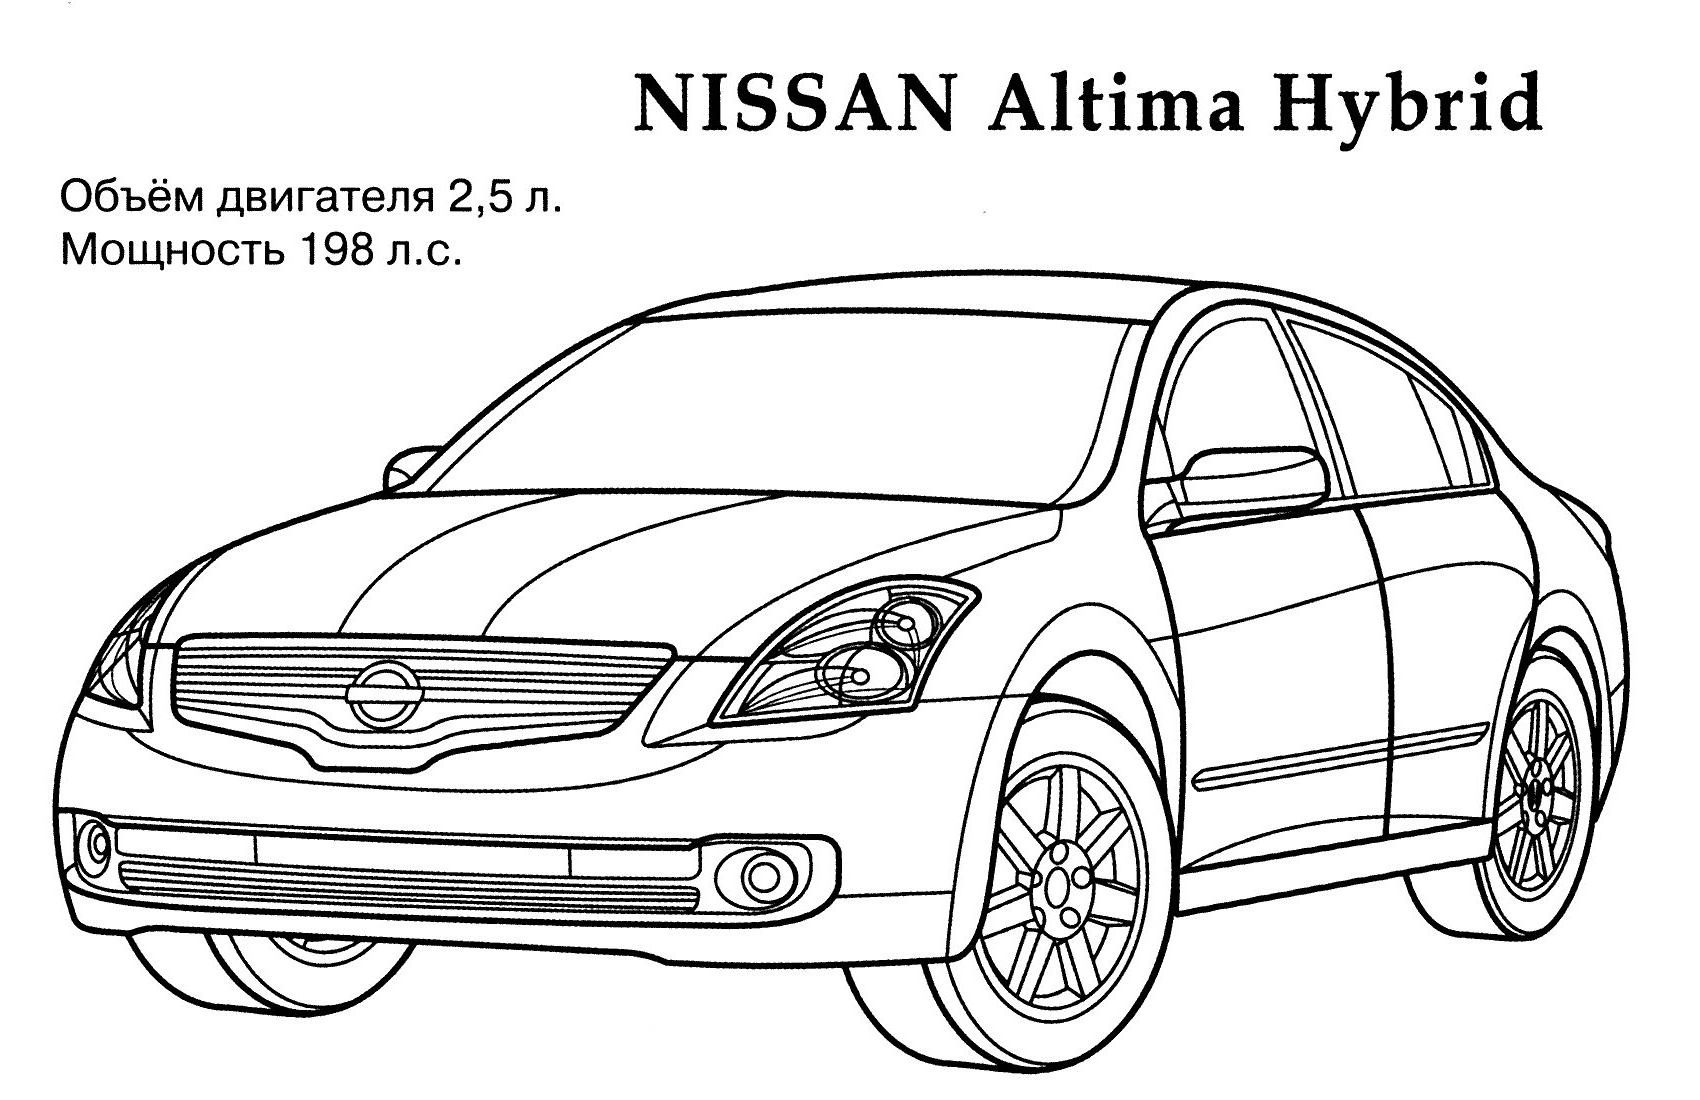 nissan gtr colouring pages nissan gtr r35 drawing at getdrawings free download gtr pages colouring nissan 1 1